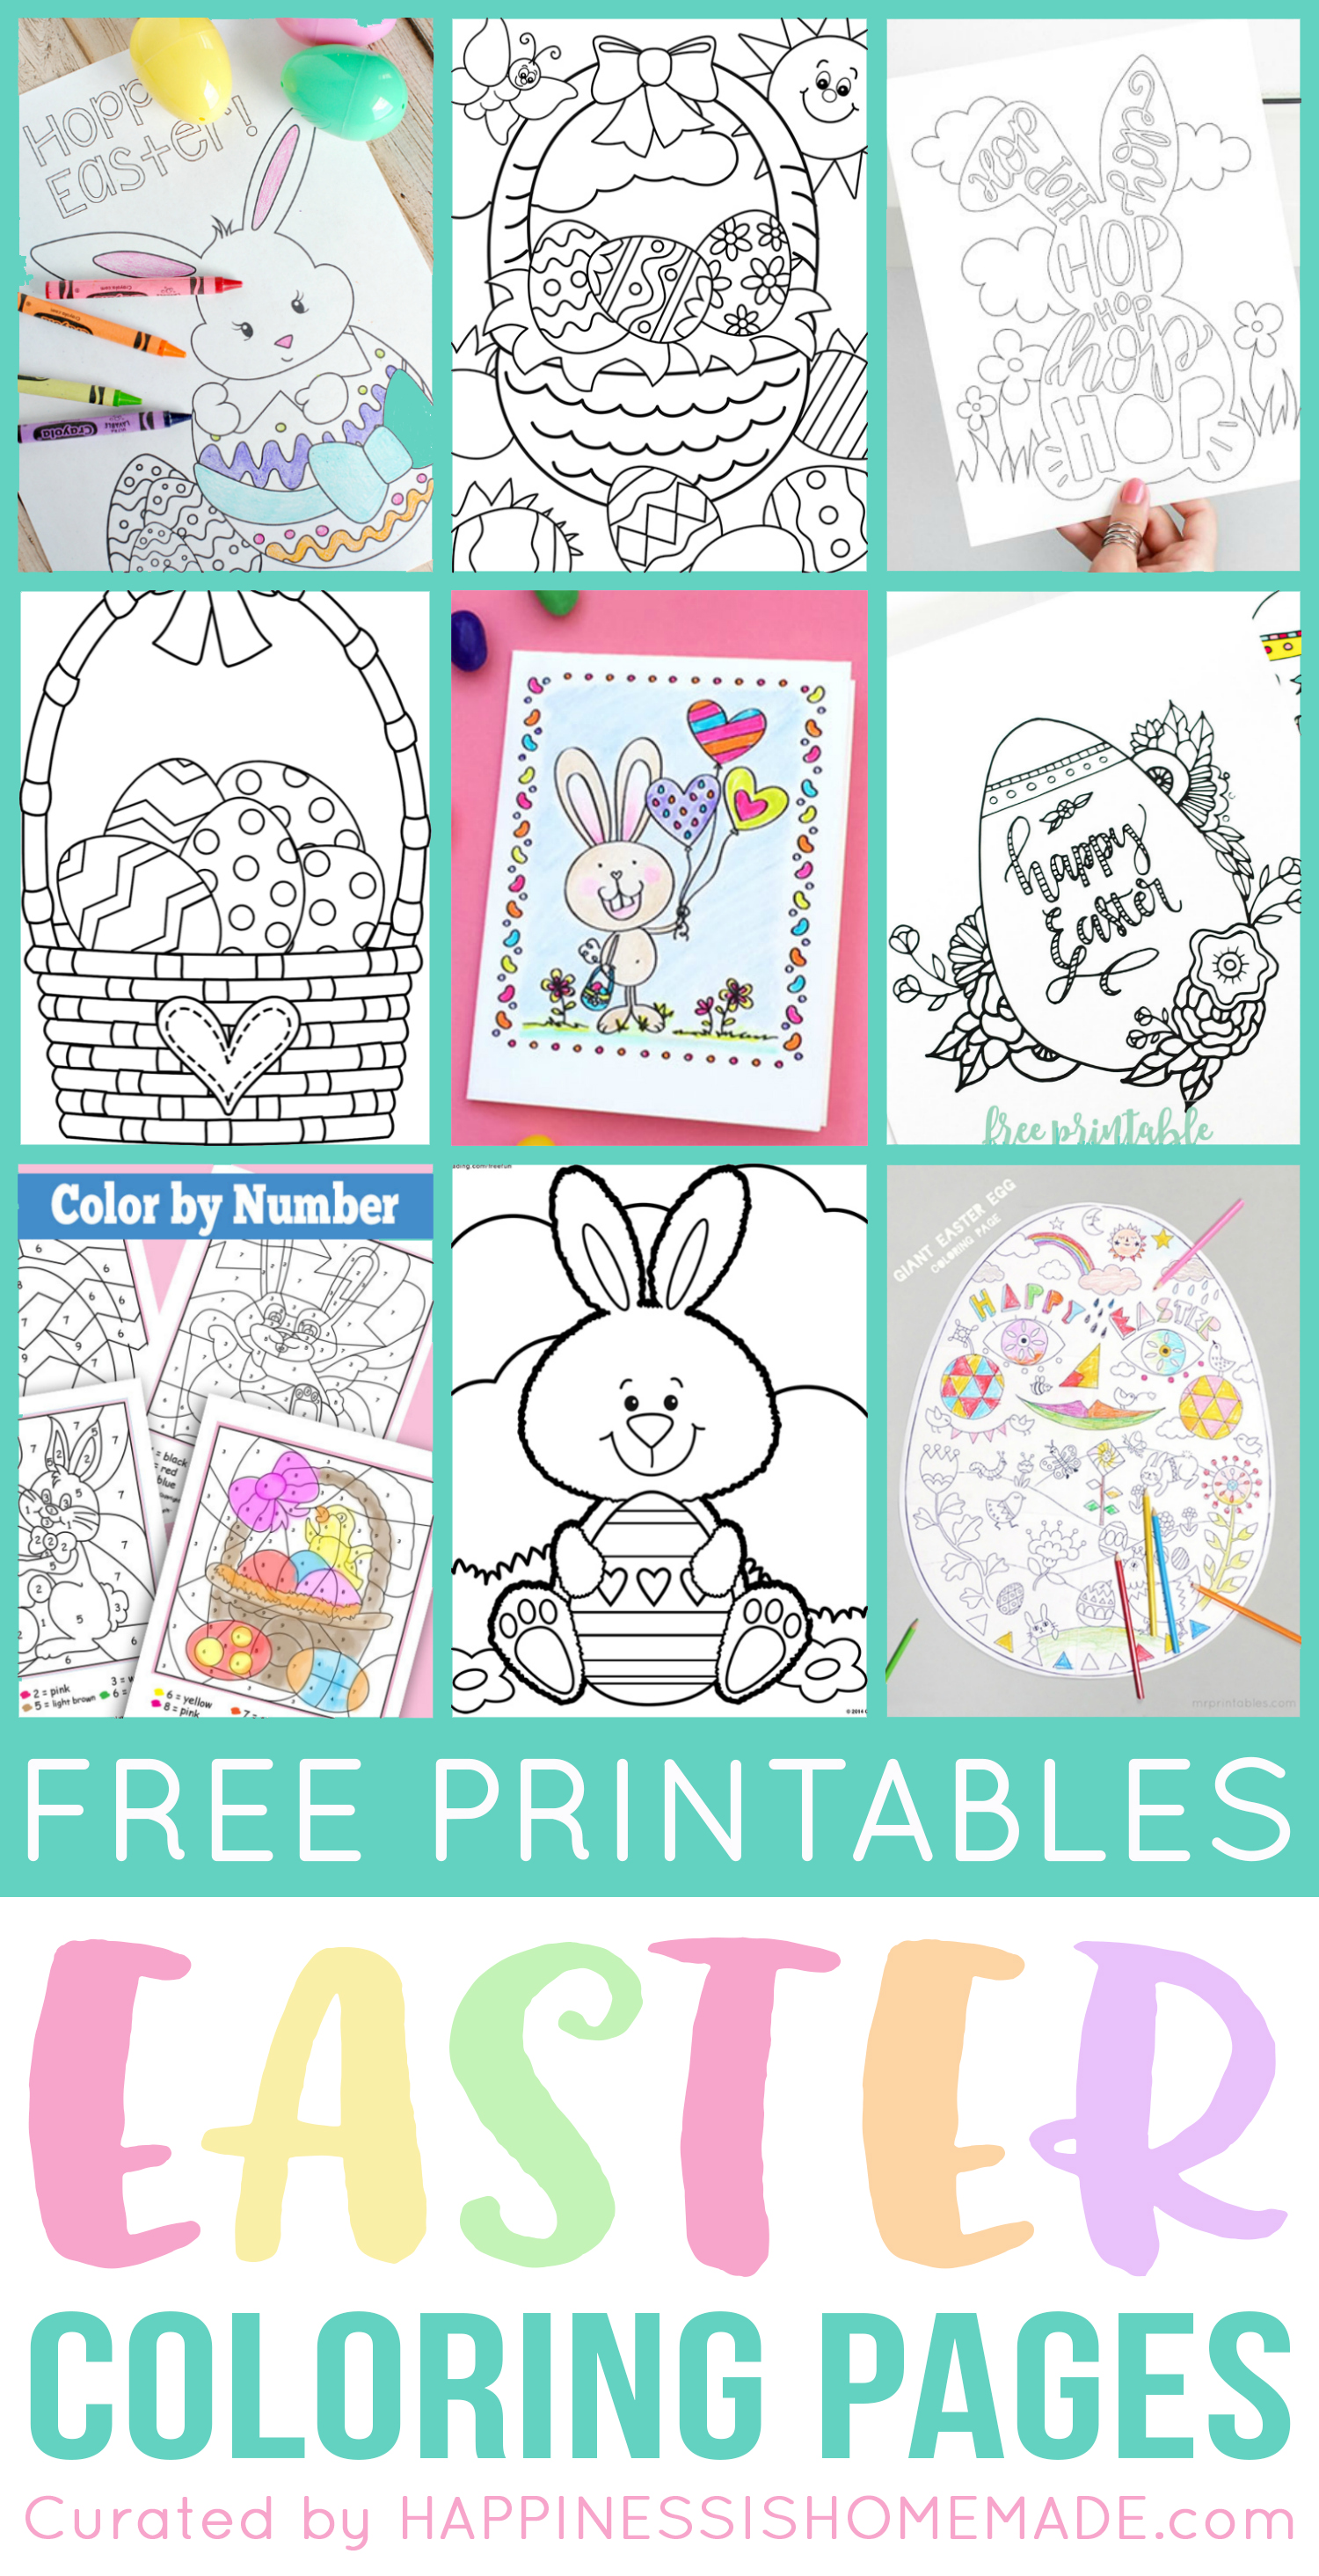 photograph relating to Color by Number Easter Printable known as No cost Easter Coloring Web pages - Joy is Selfmade